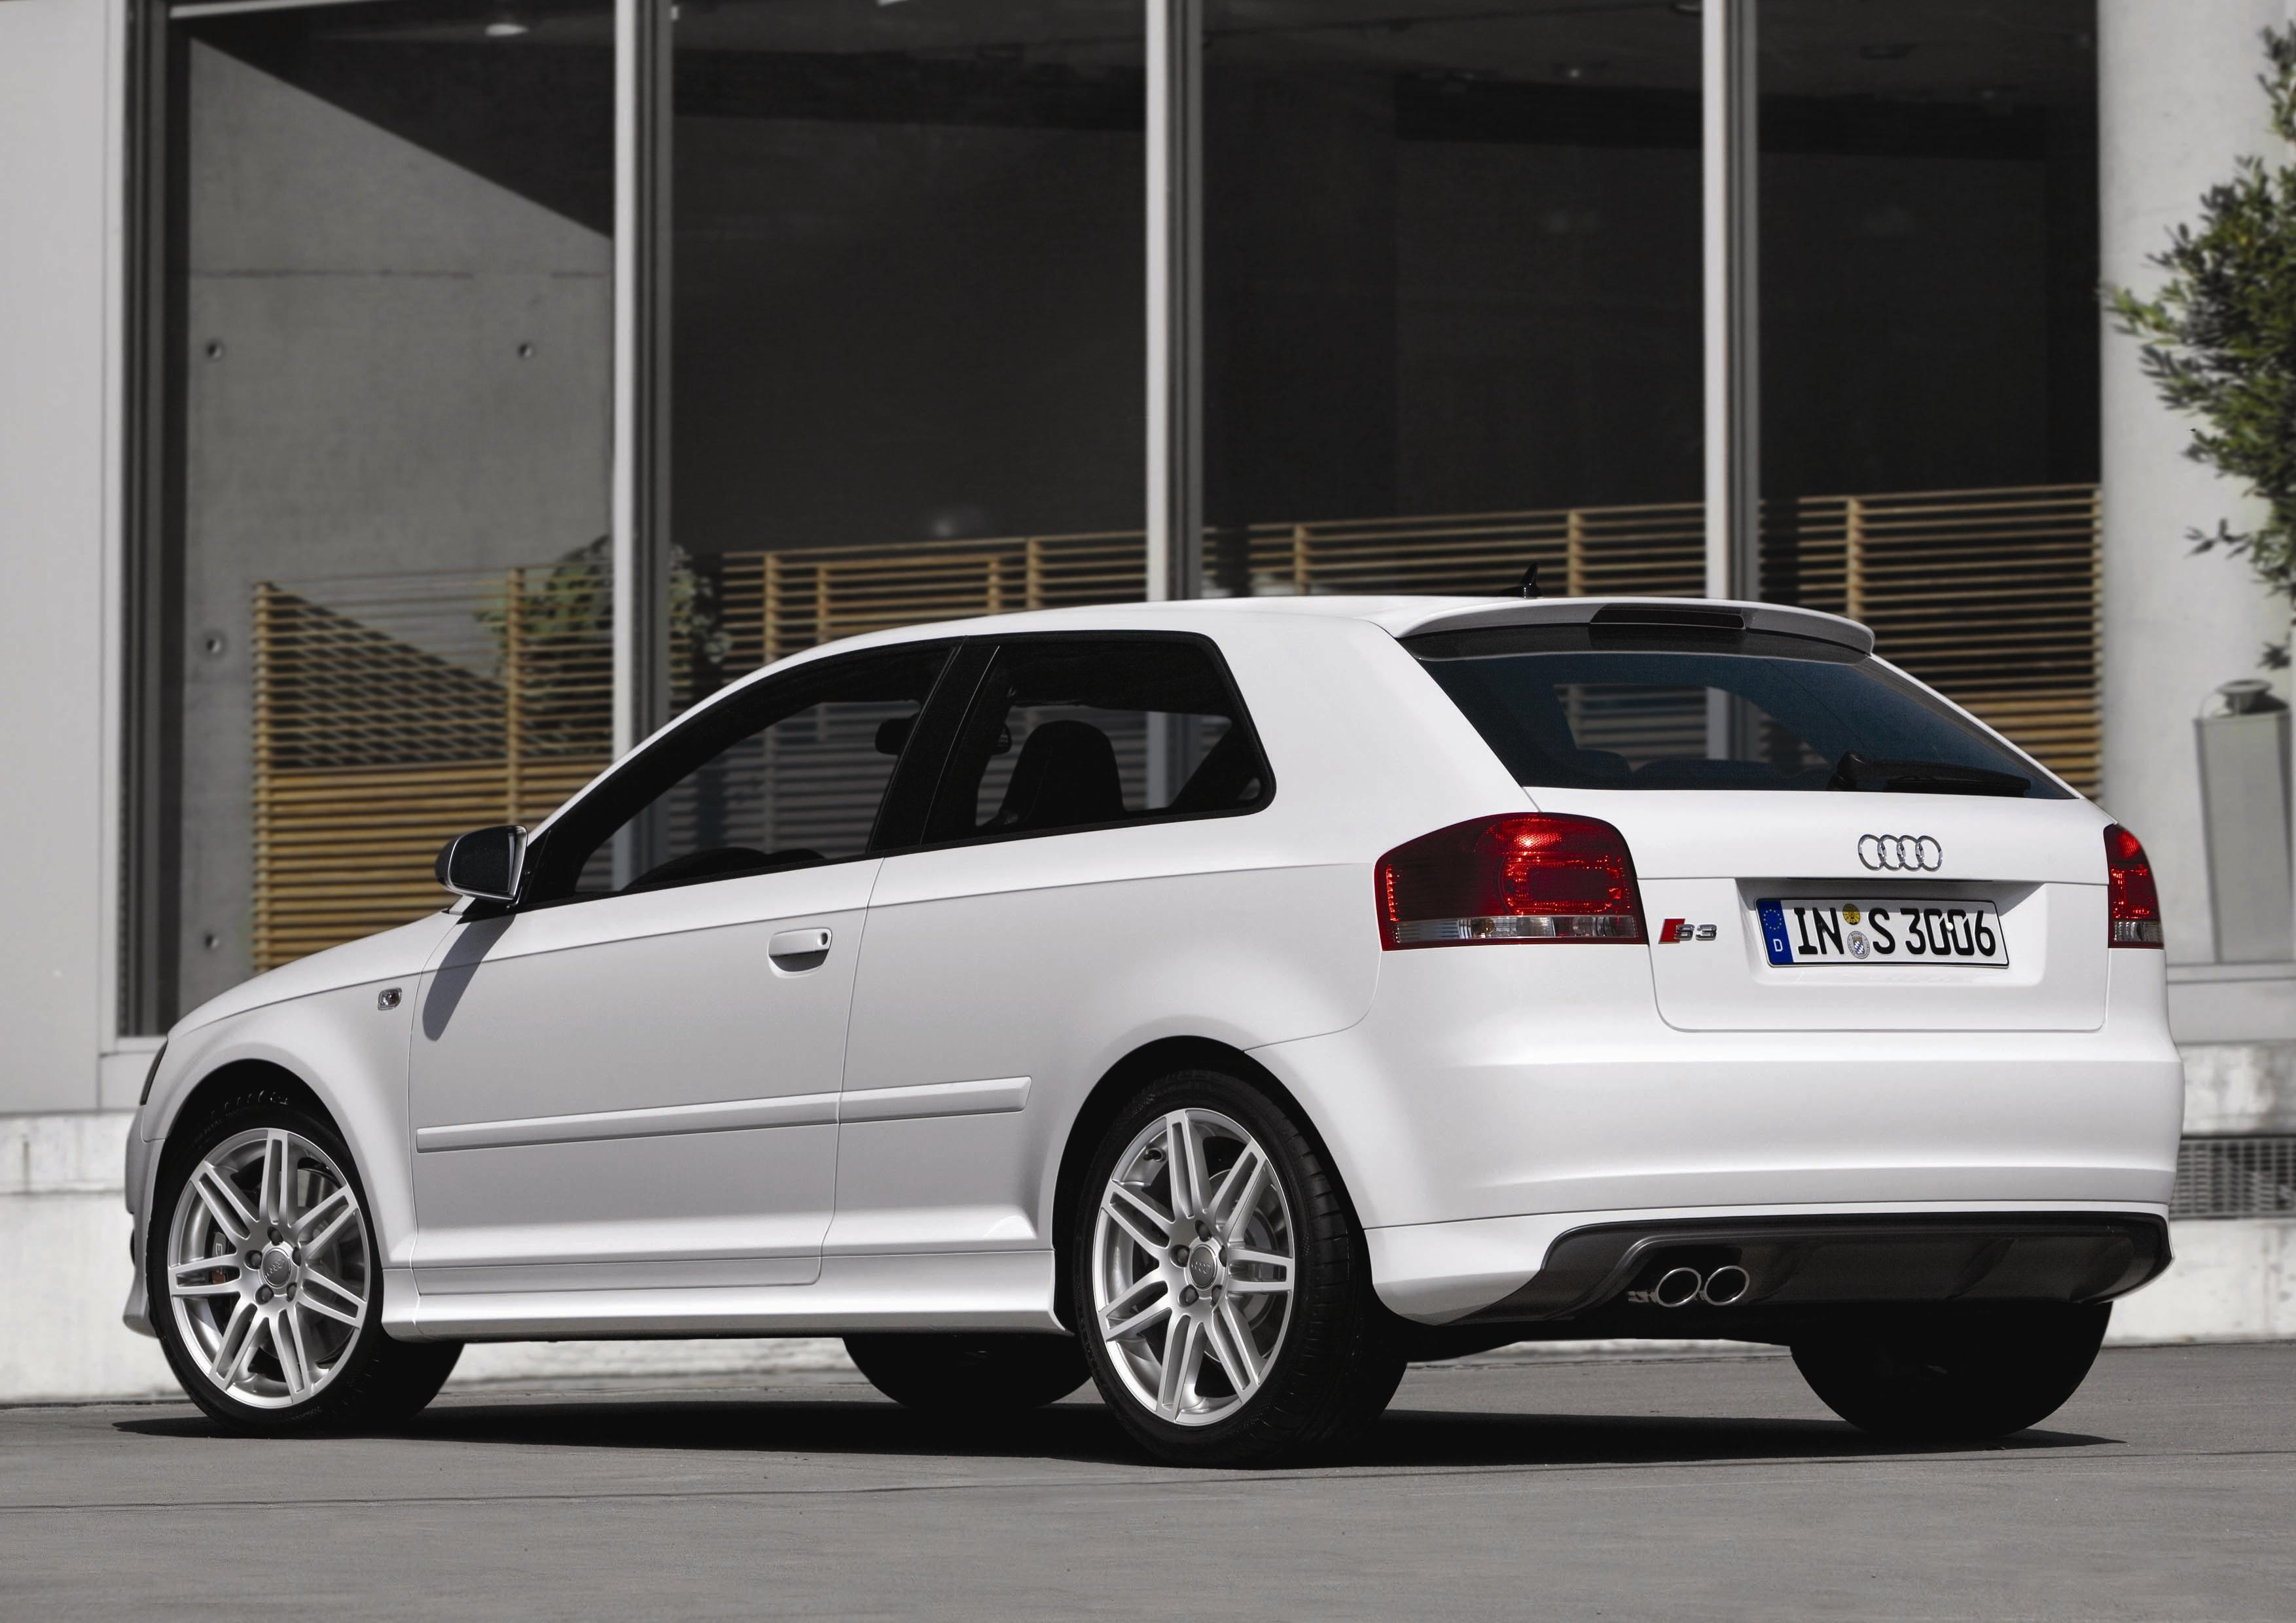 2007 Audi S3 | Top Speed